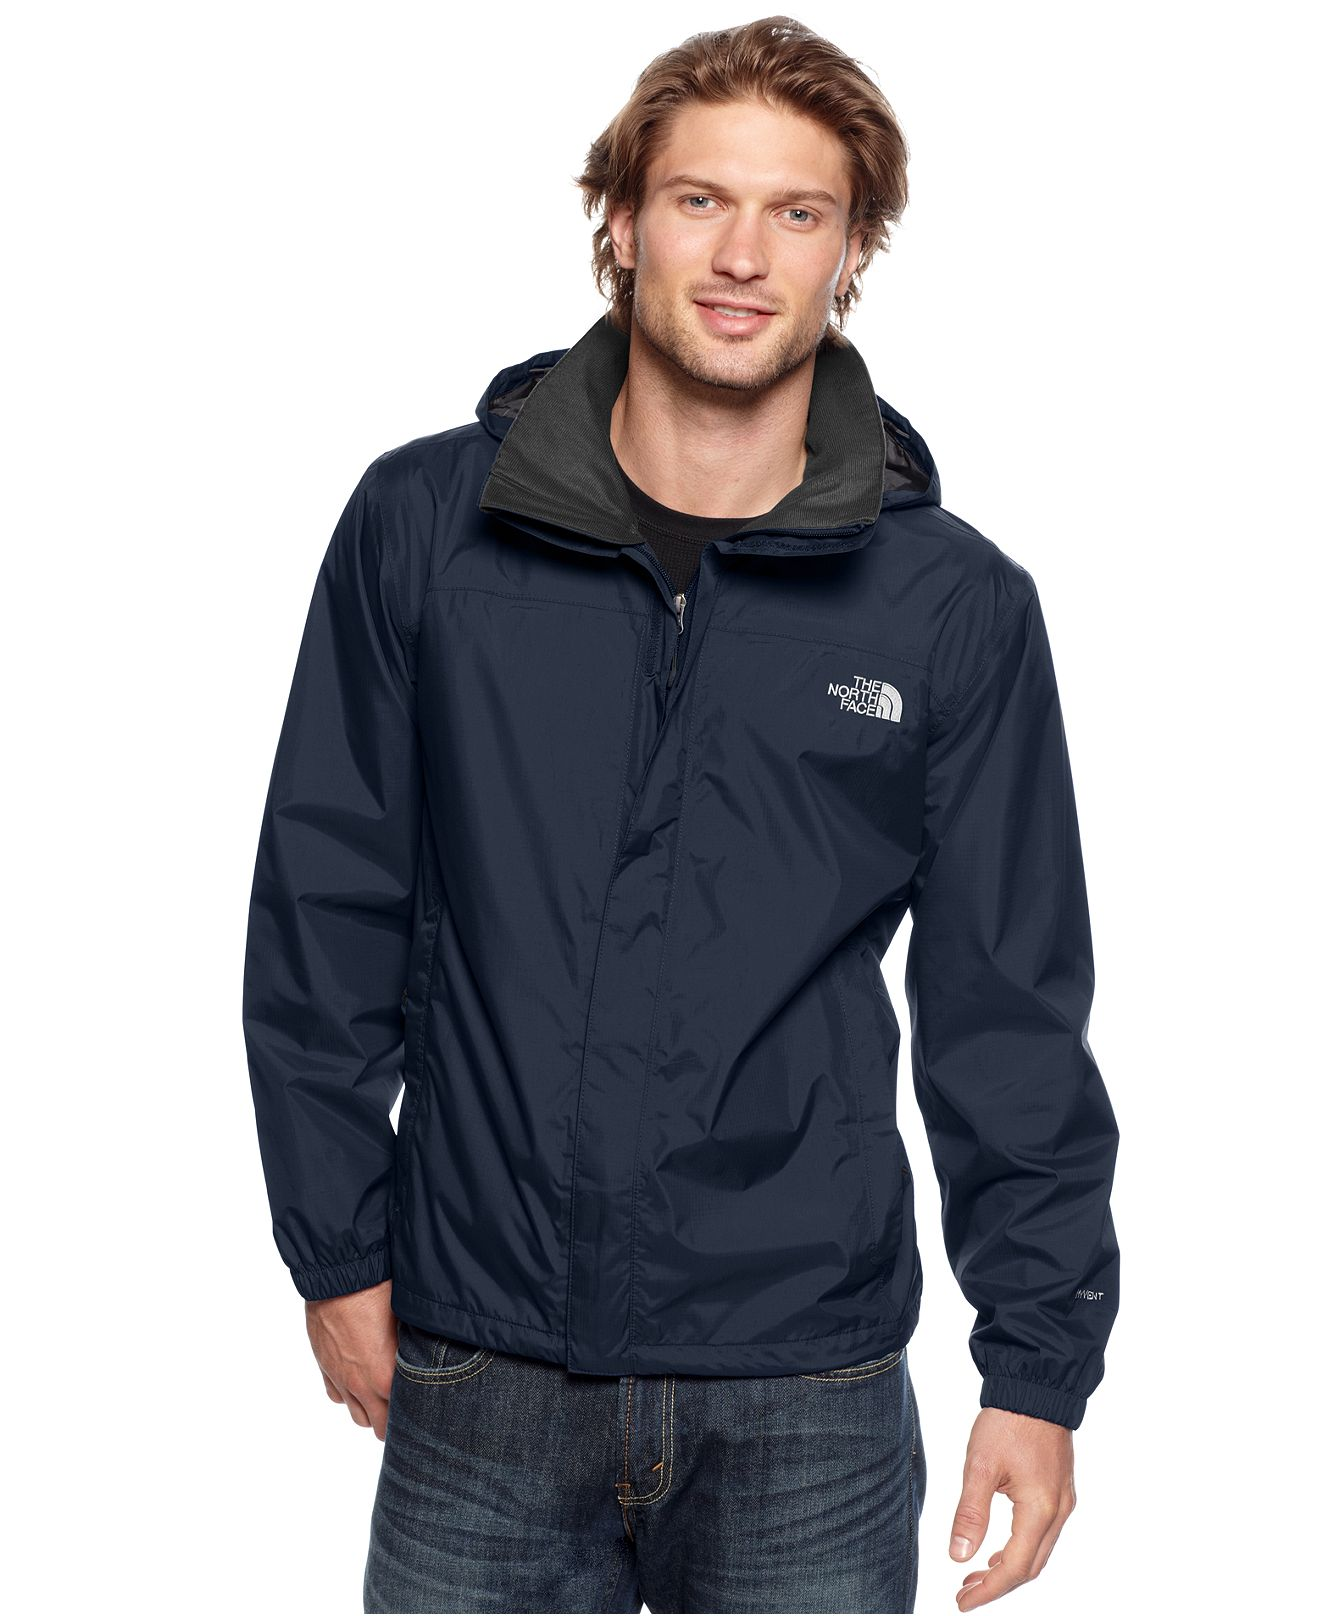 9f7698bc7 The North Face Jacket, Resolve Waterproof Rain Jacket - Coats ...